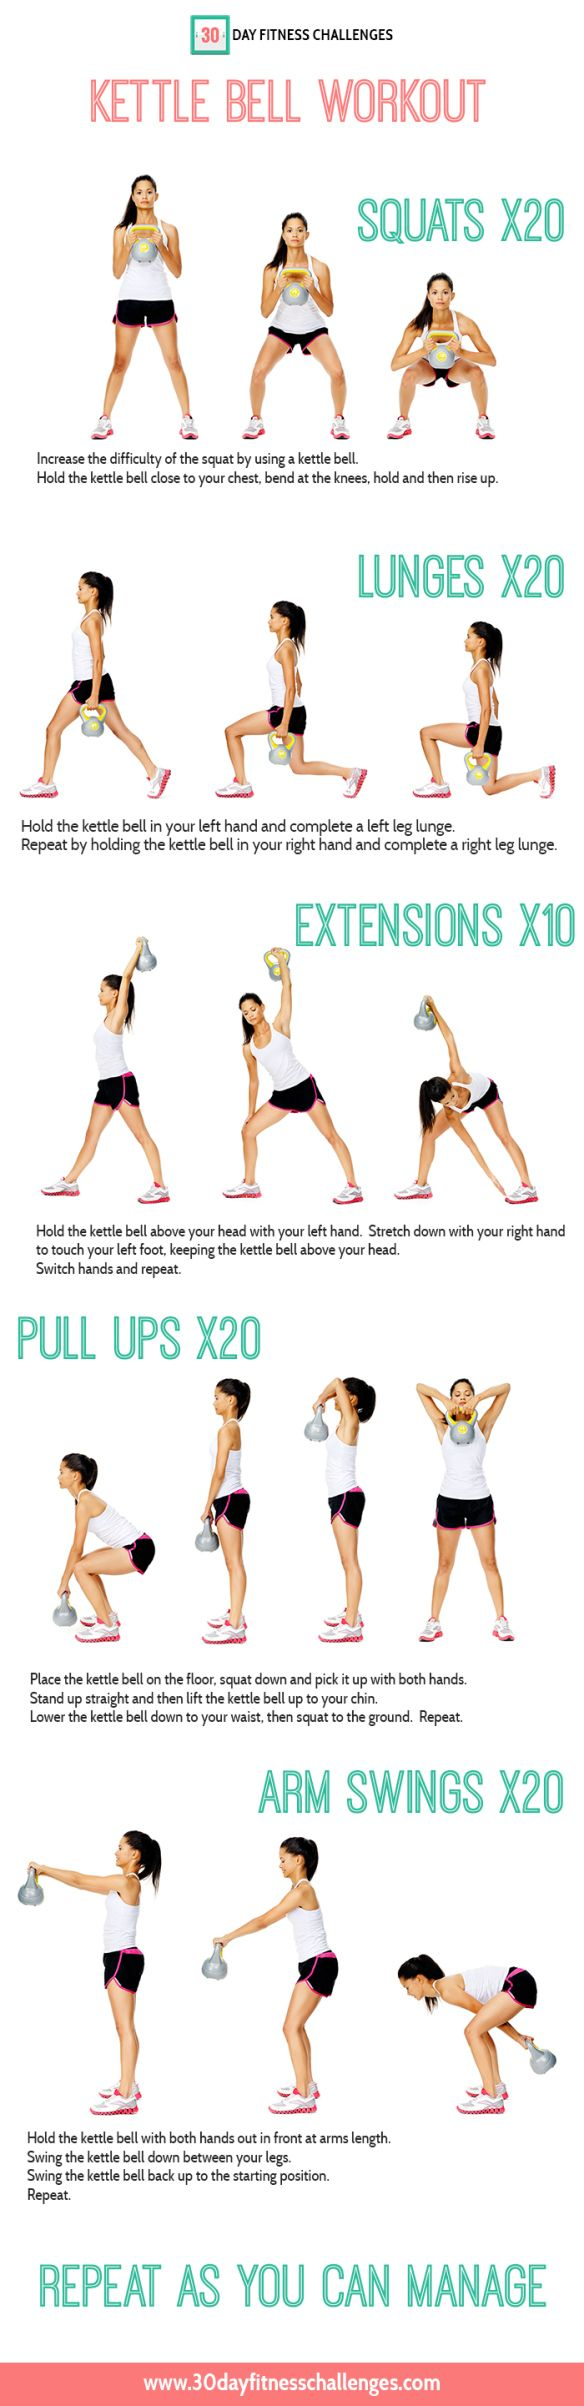 kettle-bell-workout